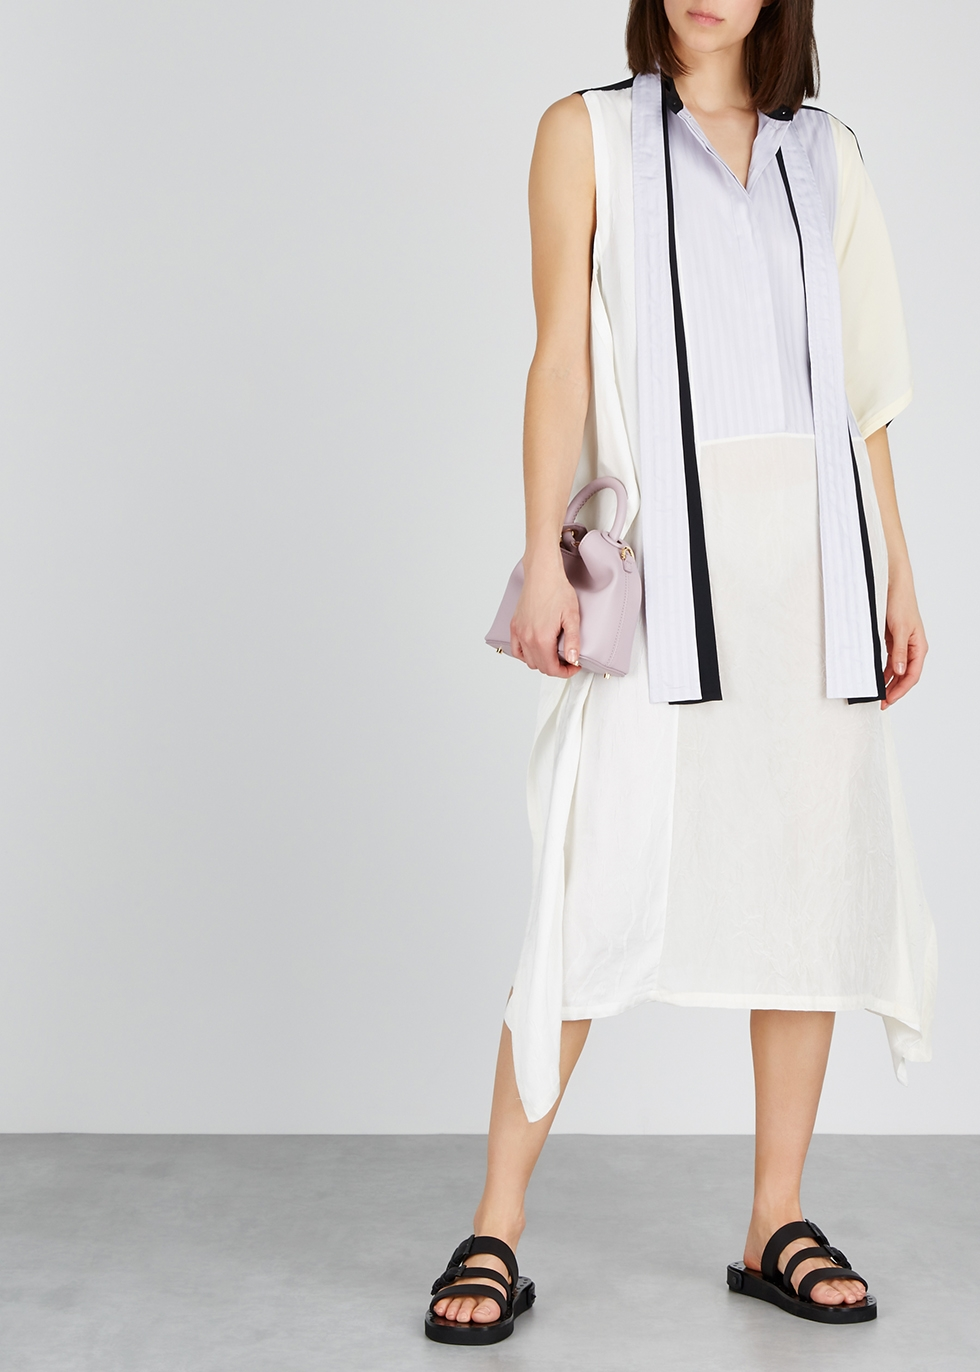 Panelled crepe de chine midi dress - JW Anderson